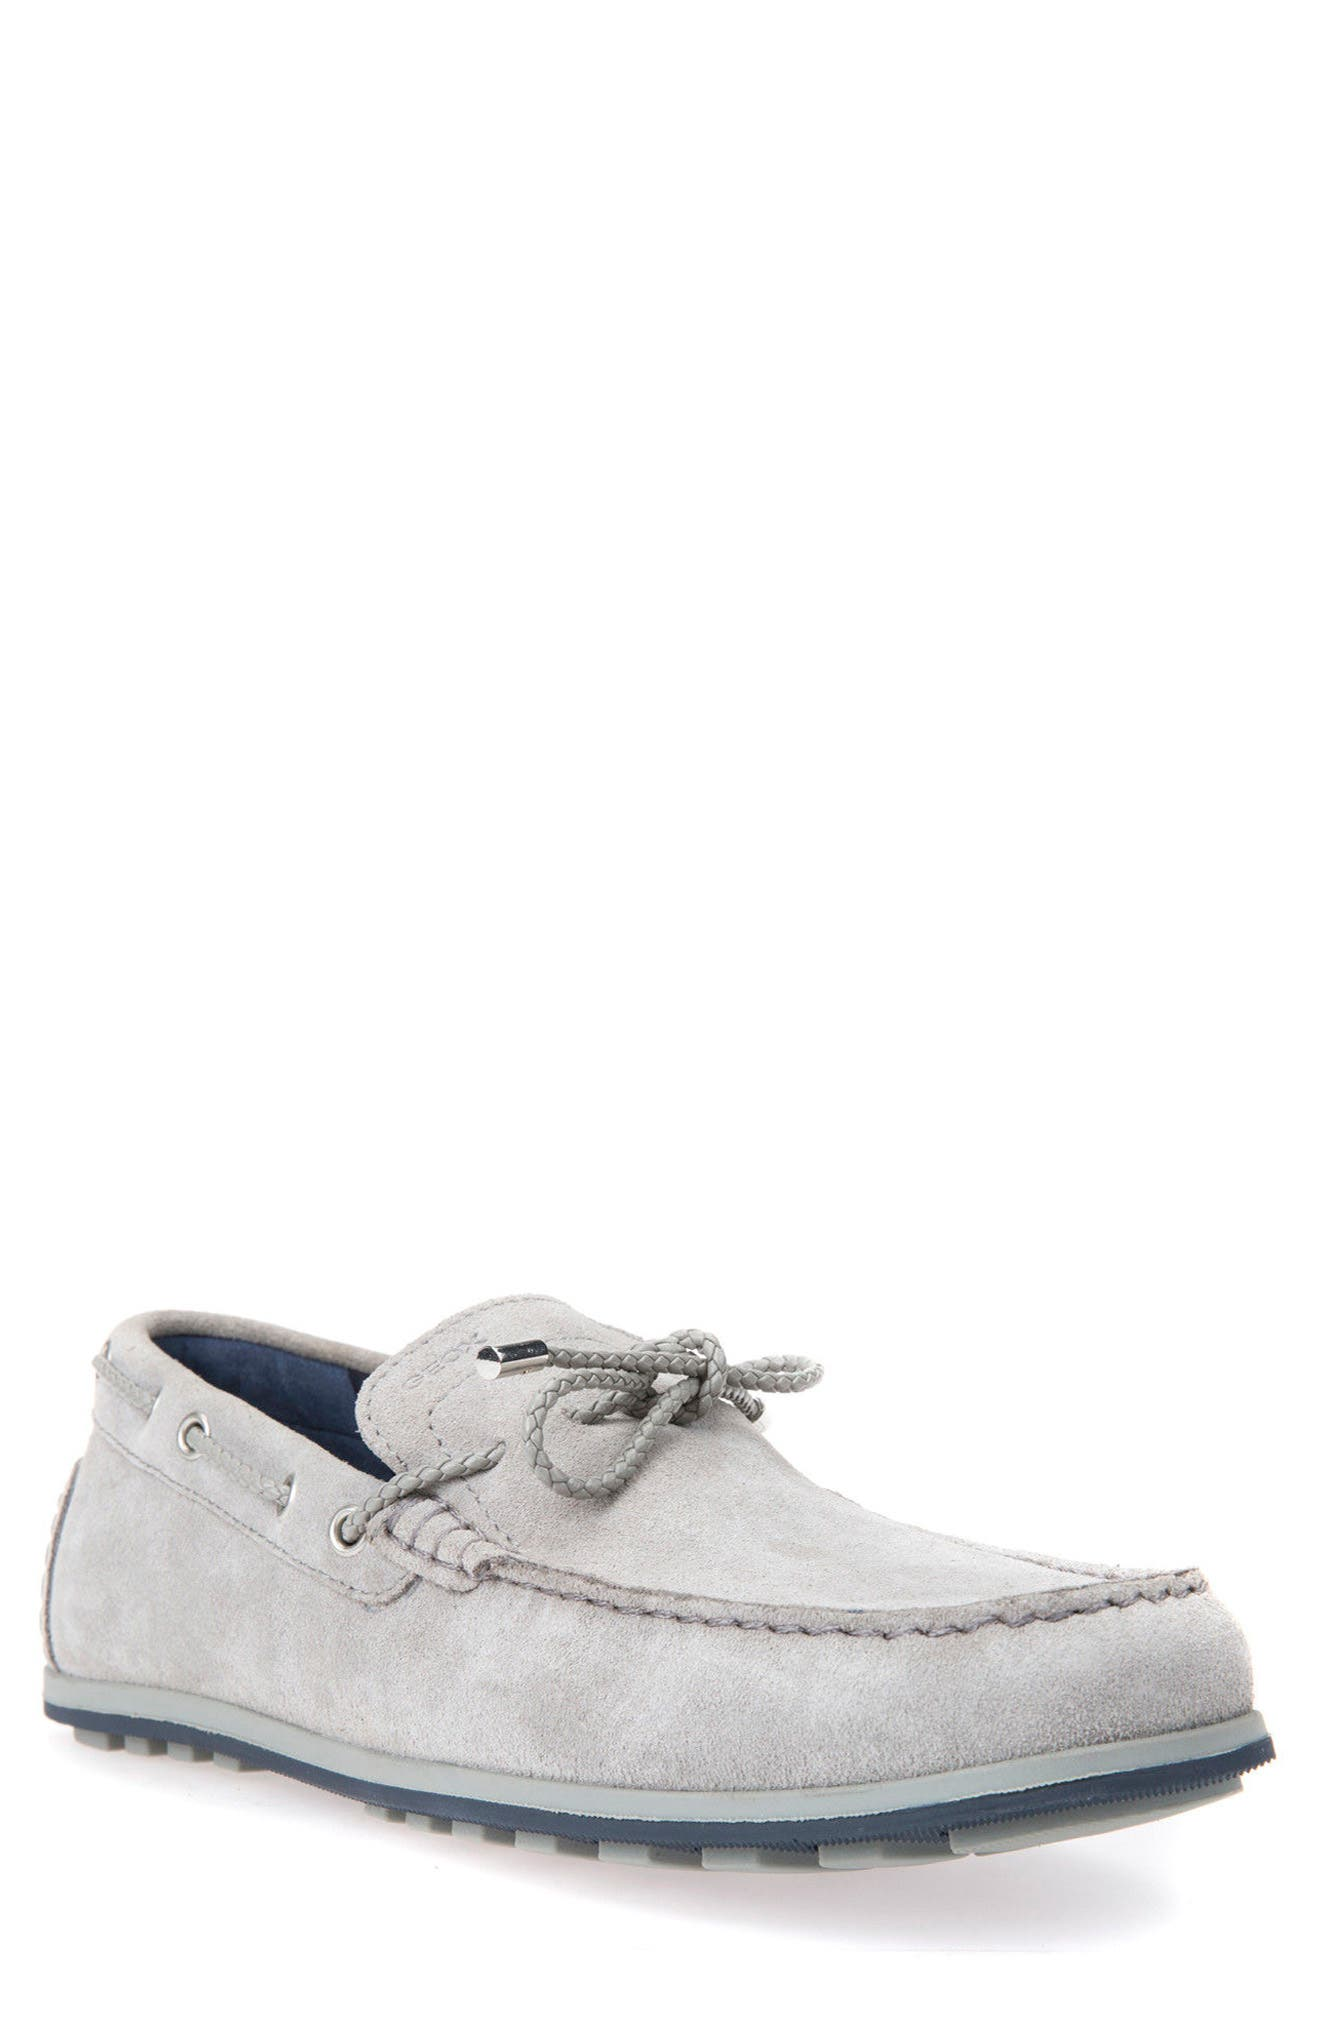 Mirvin 2 Boat Shoe,                             Main thumbnail 1, color,                             Stone Suede